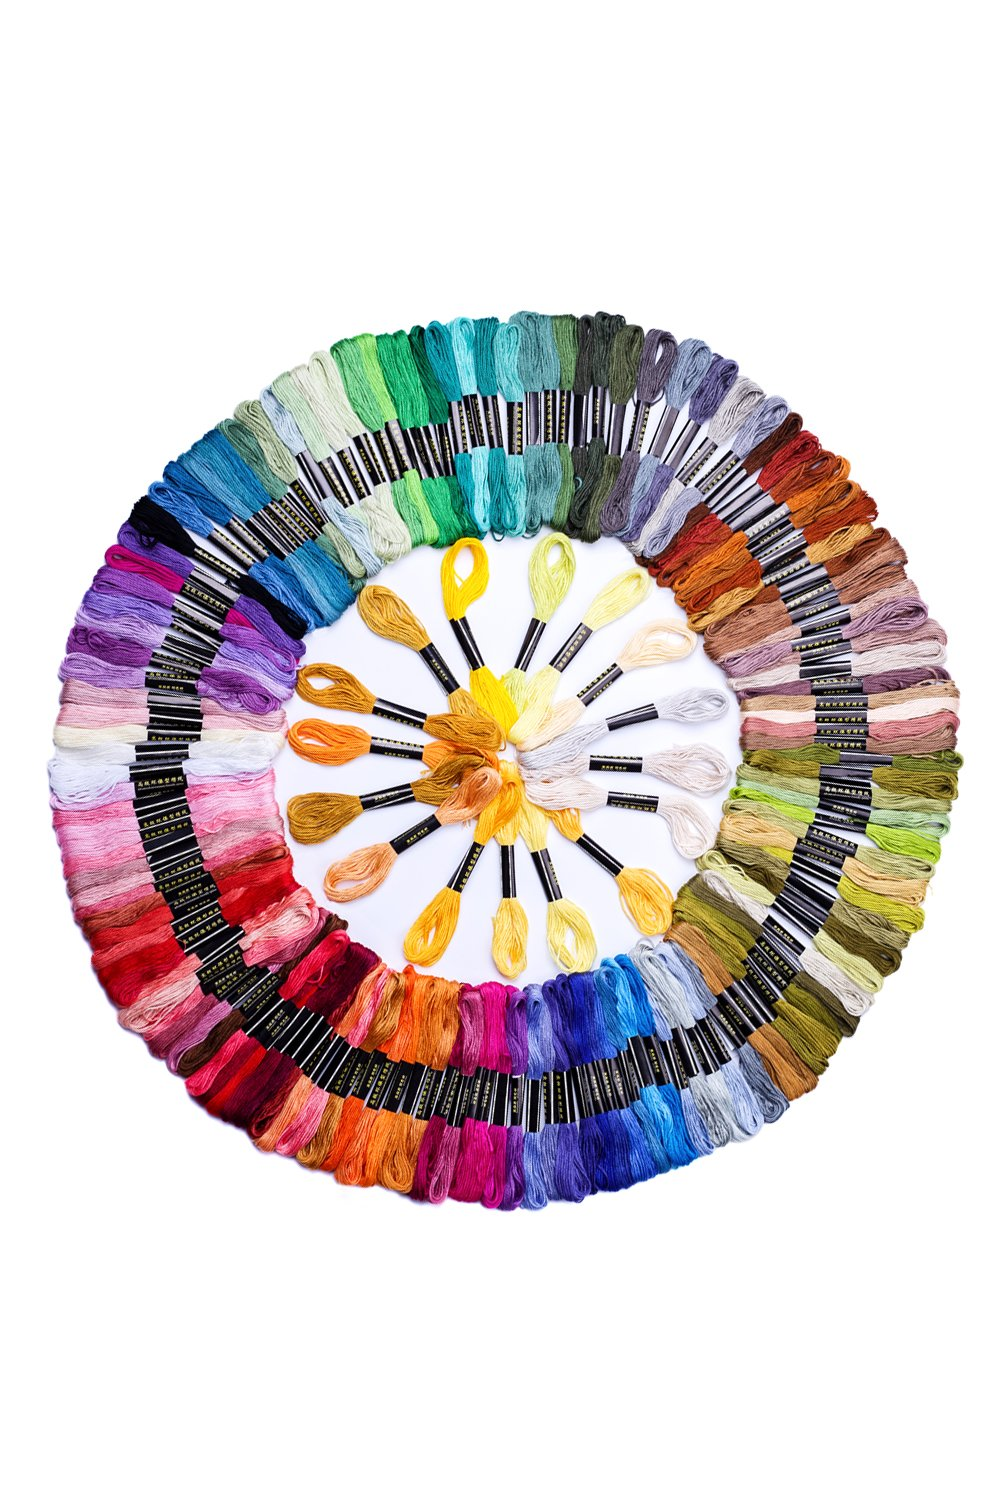 Ohlily 150 Skeins of Cross Stitch Threads 8M Cotton Embroidery Floss Sewing Threads Random Color